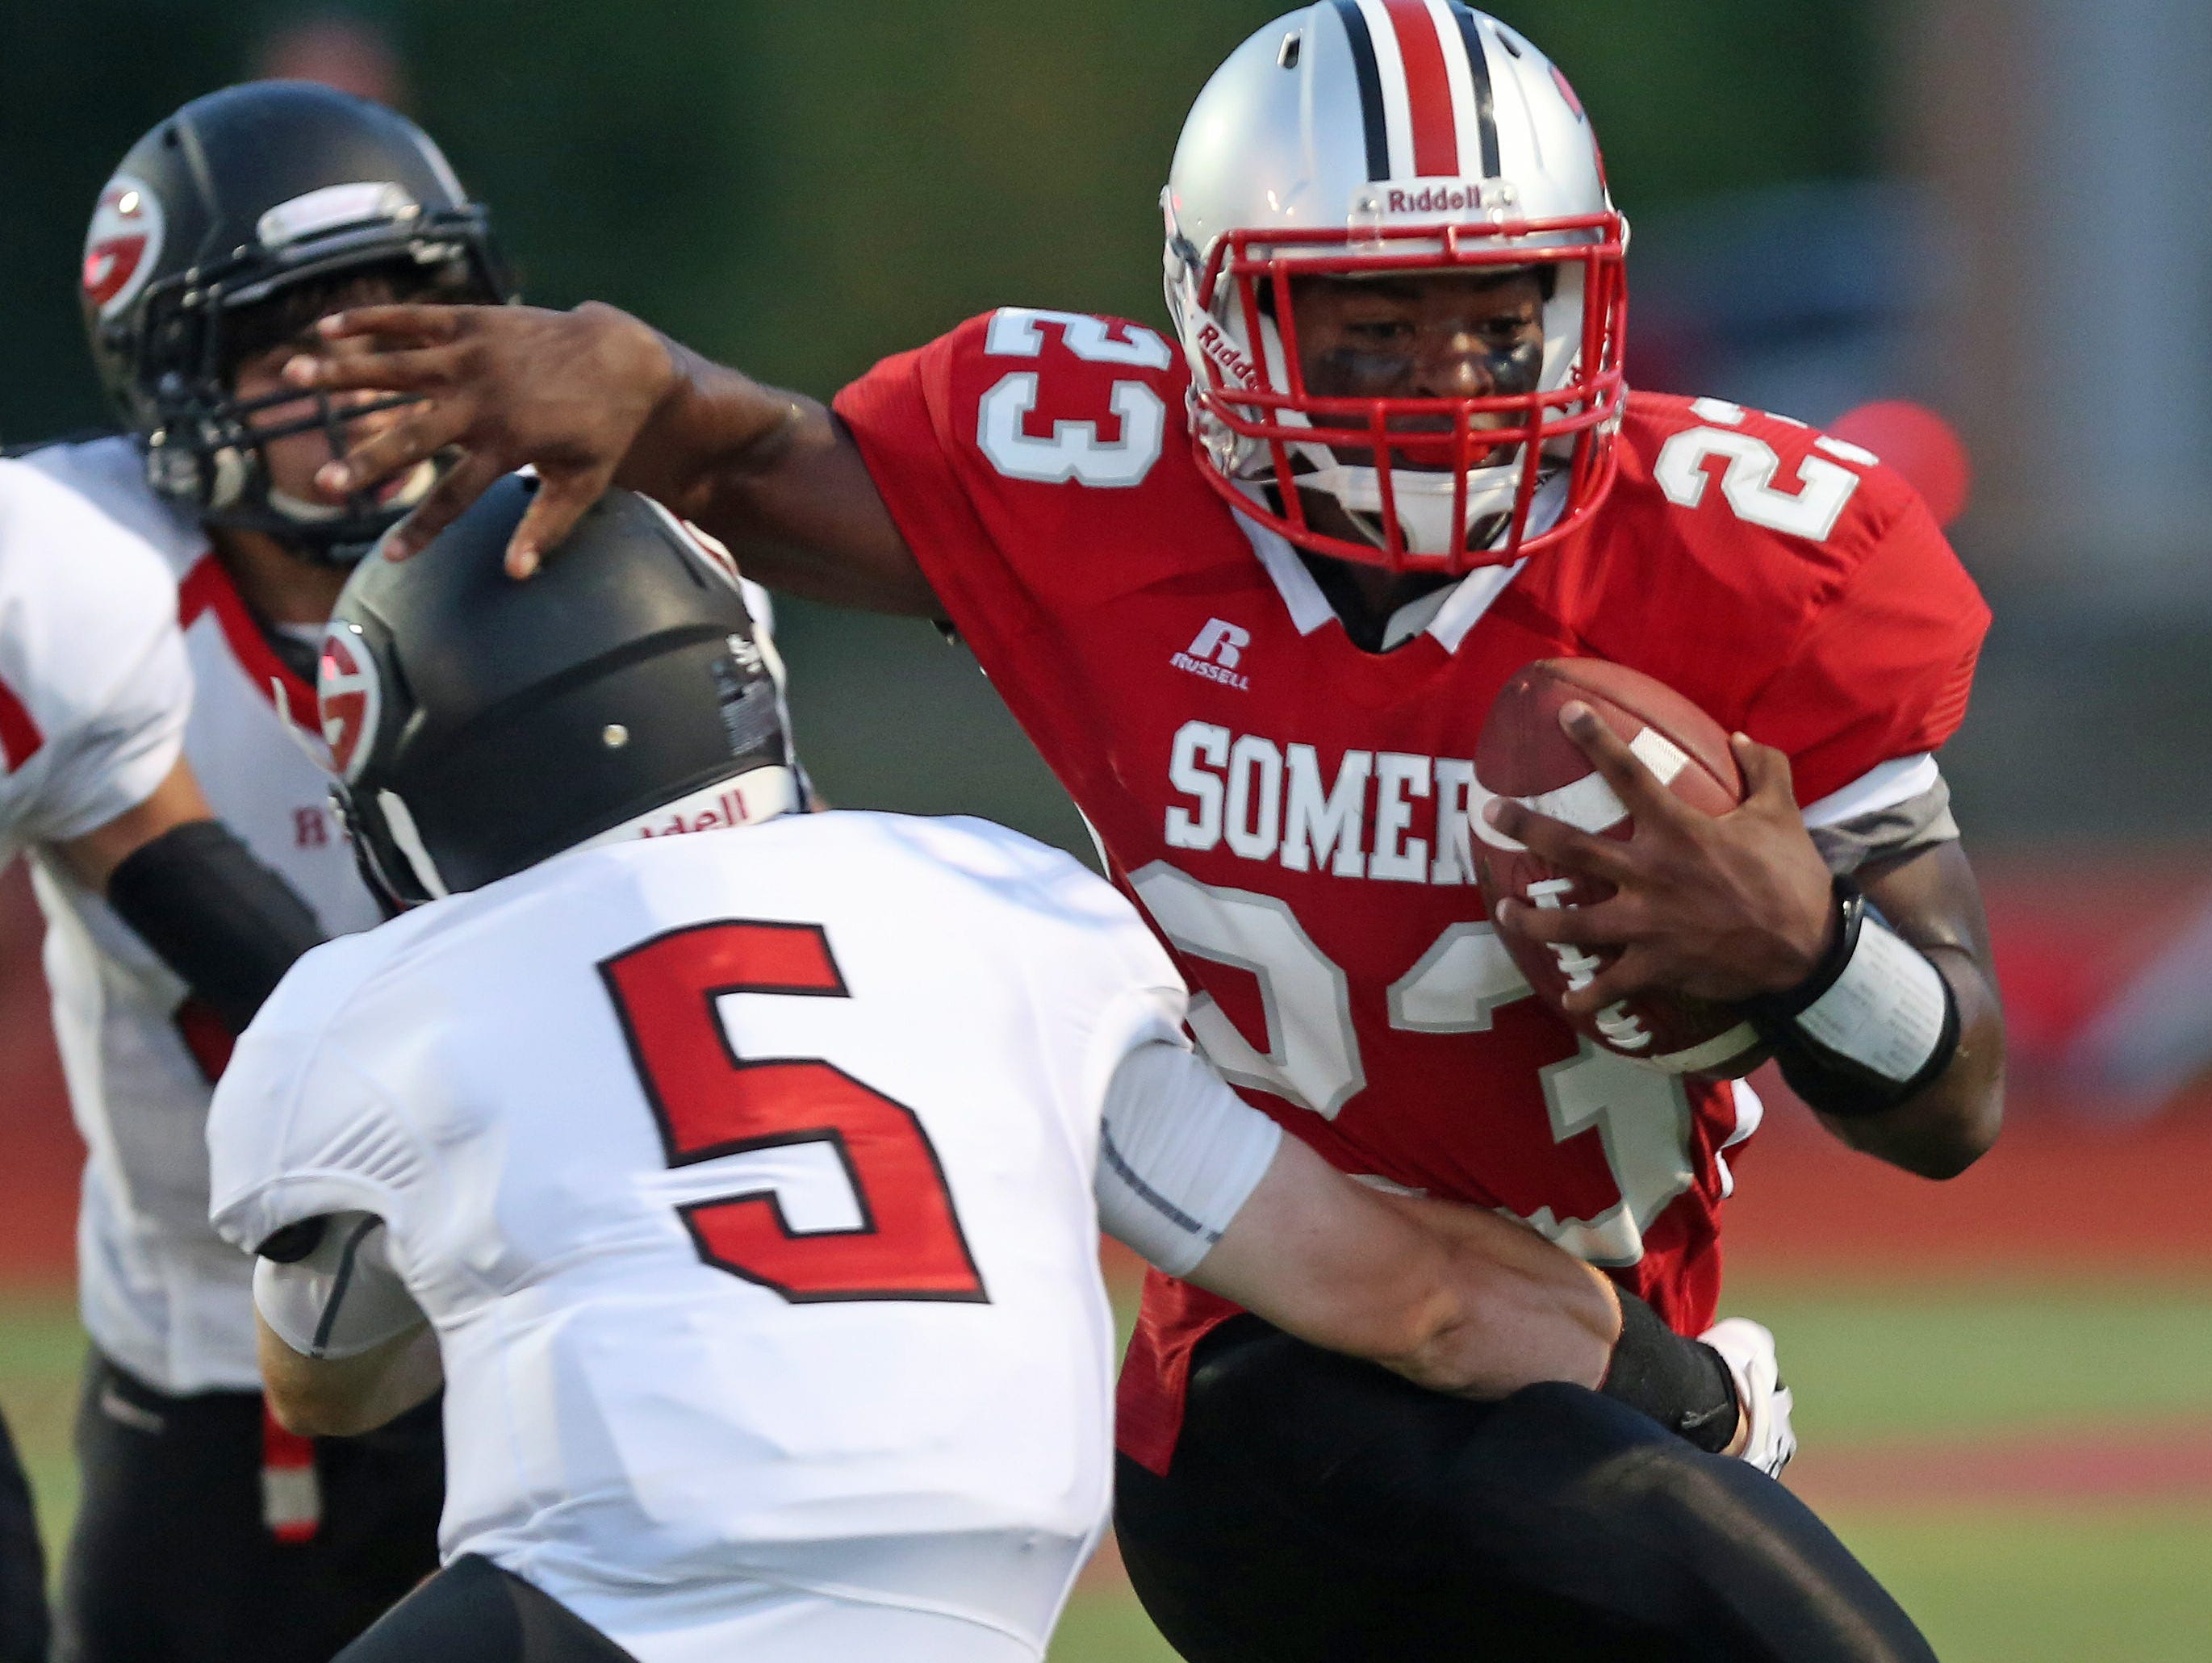 Somers's Messiah Horne (23 ) tries to get around Rye's Tyler Reno (5) during first half action at Somers High School Sept. 4, 2015